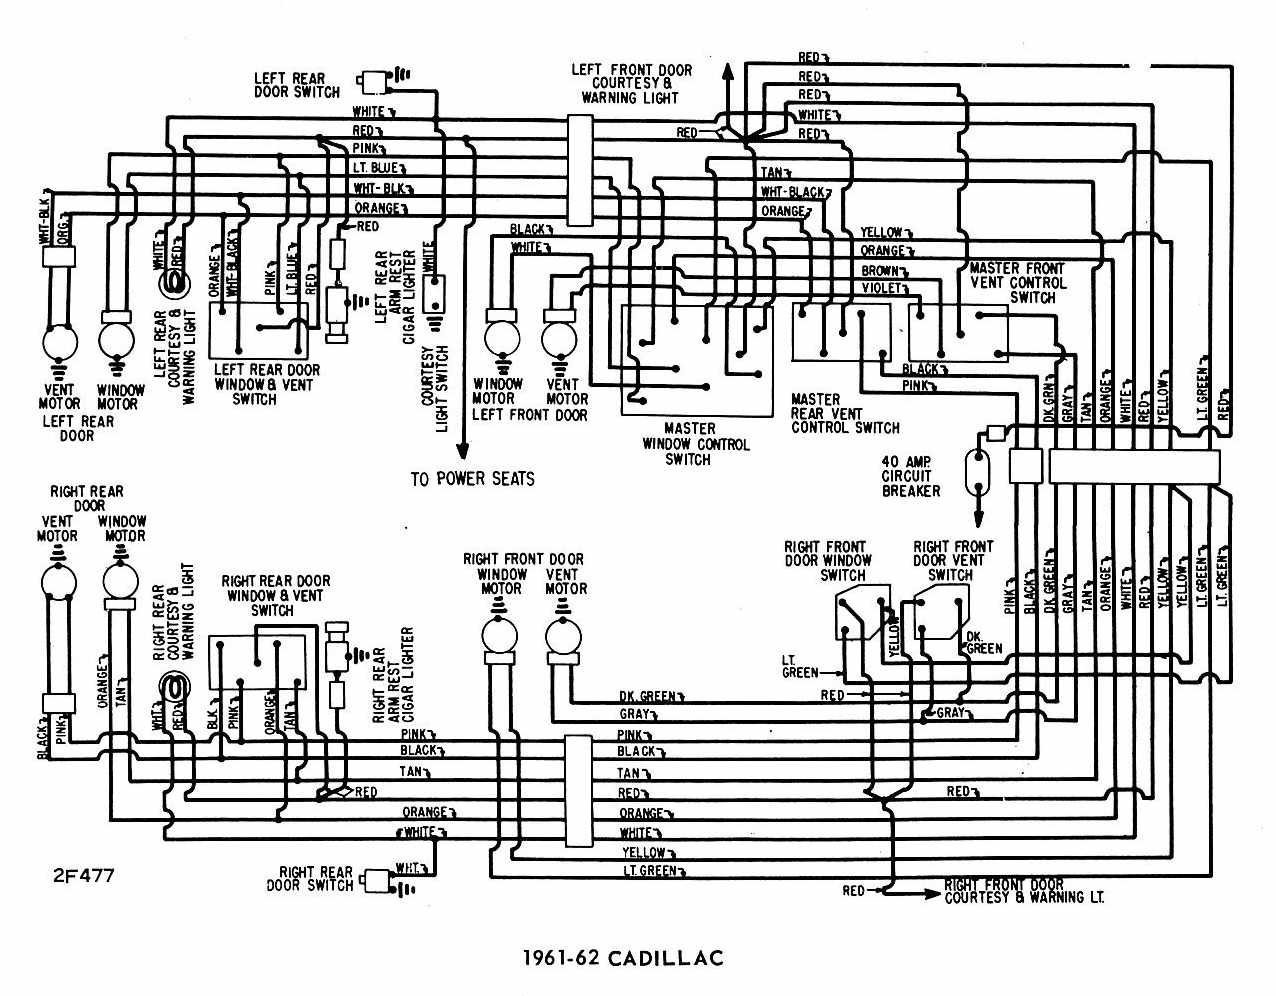 cadillac wiring diagrams schematics wiring diagram blog1950 cadillac wiring diagram wiring diagram detailed 98 cadillac wiring schematics starting disabled 1961 cadillac wiring